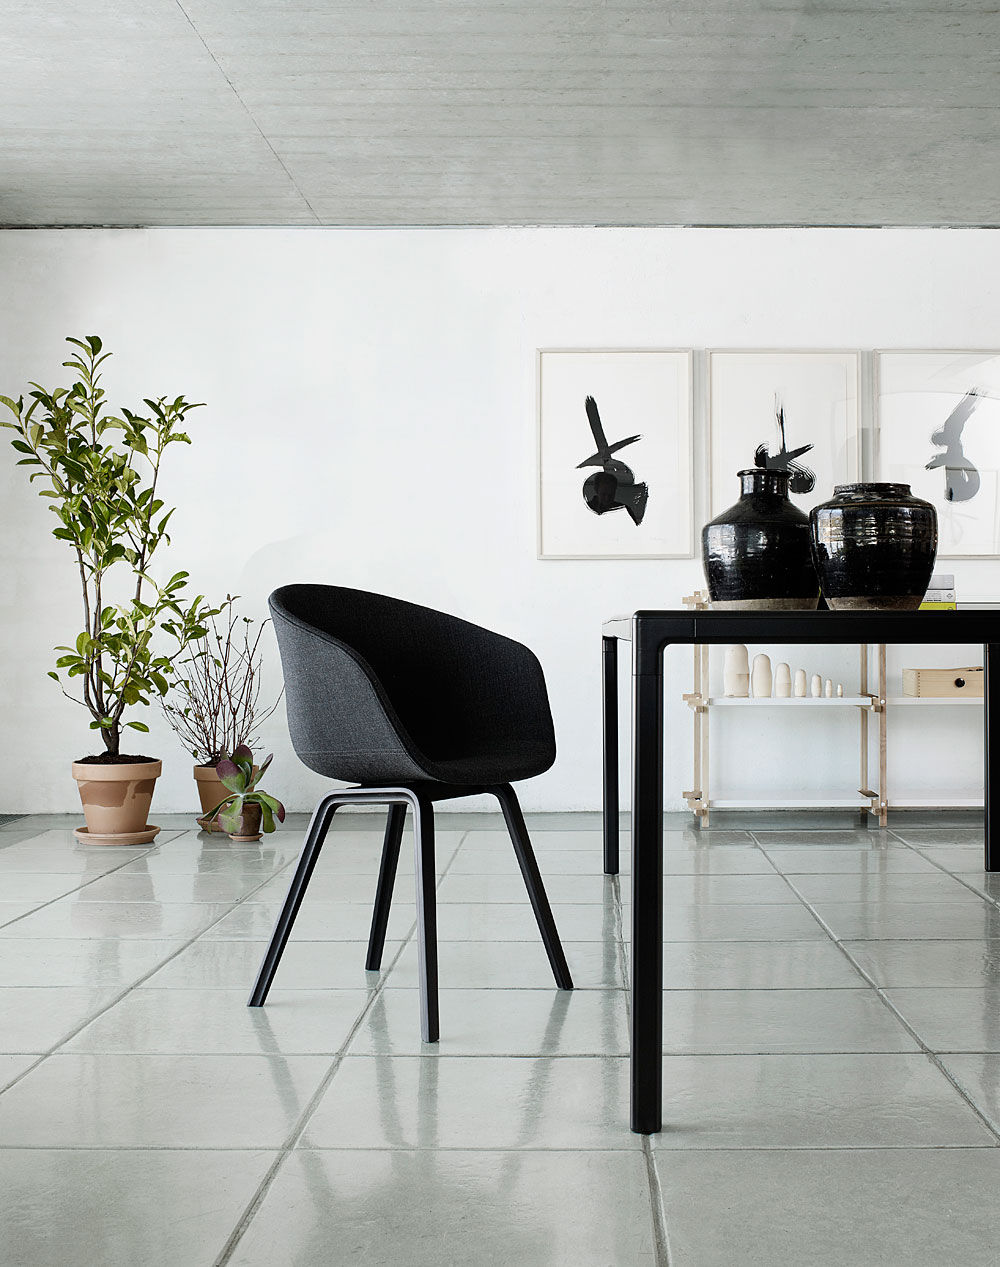 office chair conference dining scandinavian design aac22. Conference Chair With Armrests / Fabric Polypropylene - AAC22/AAC23 By Hee Welling Office Dining Scandinavian Design Aac22